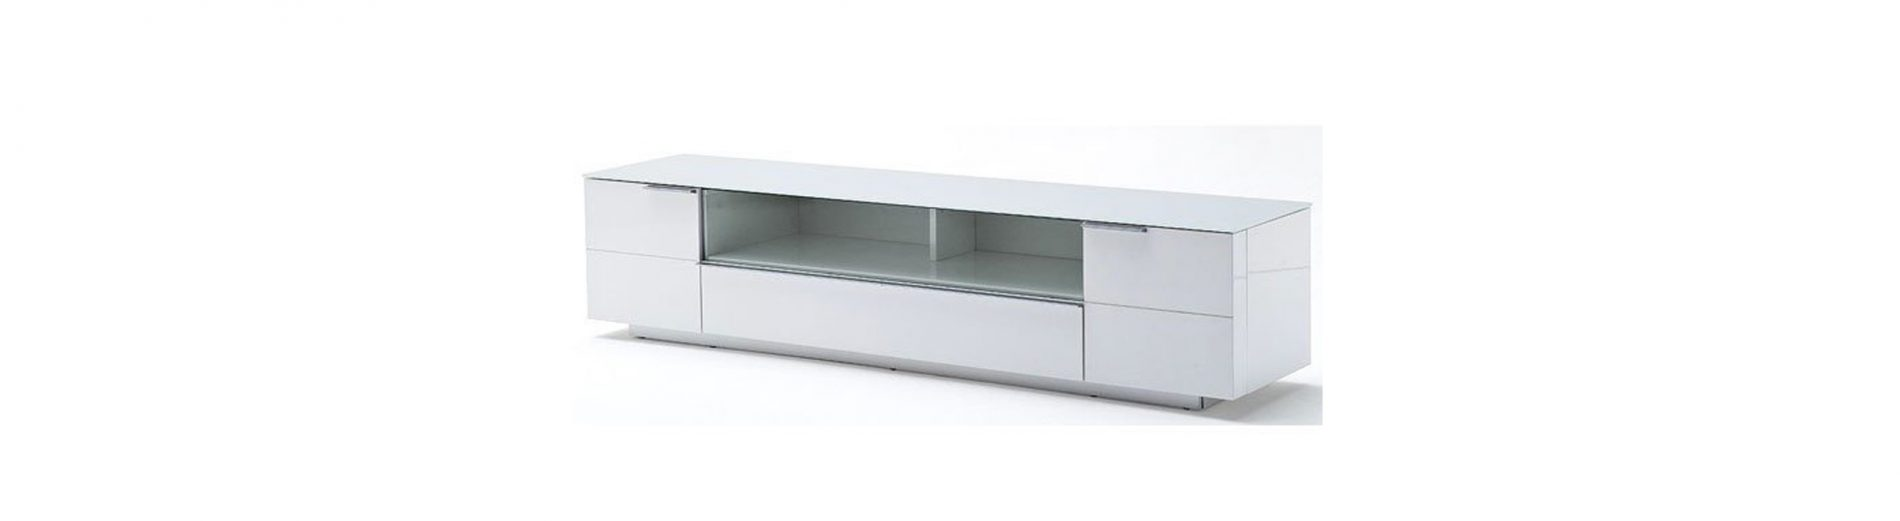 Choosing Perfect Television Stands And Cabinets: Common Designs And Materials